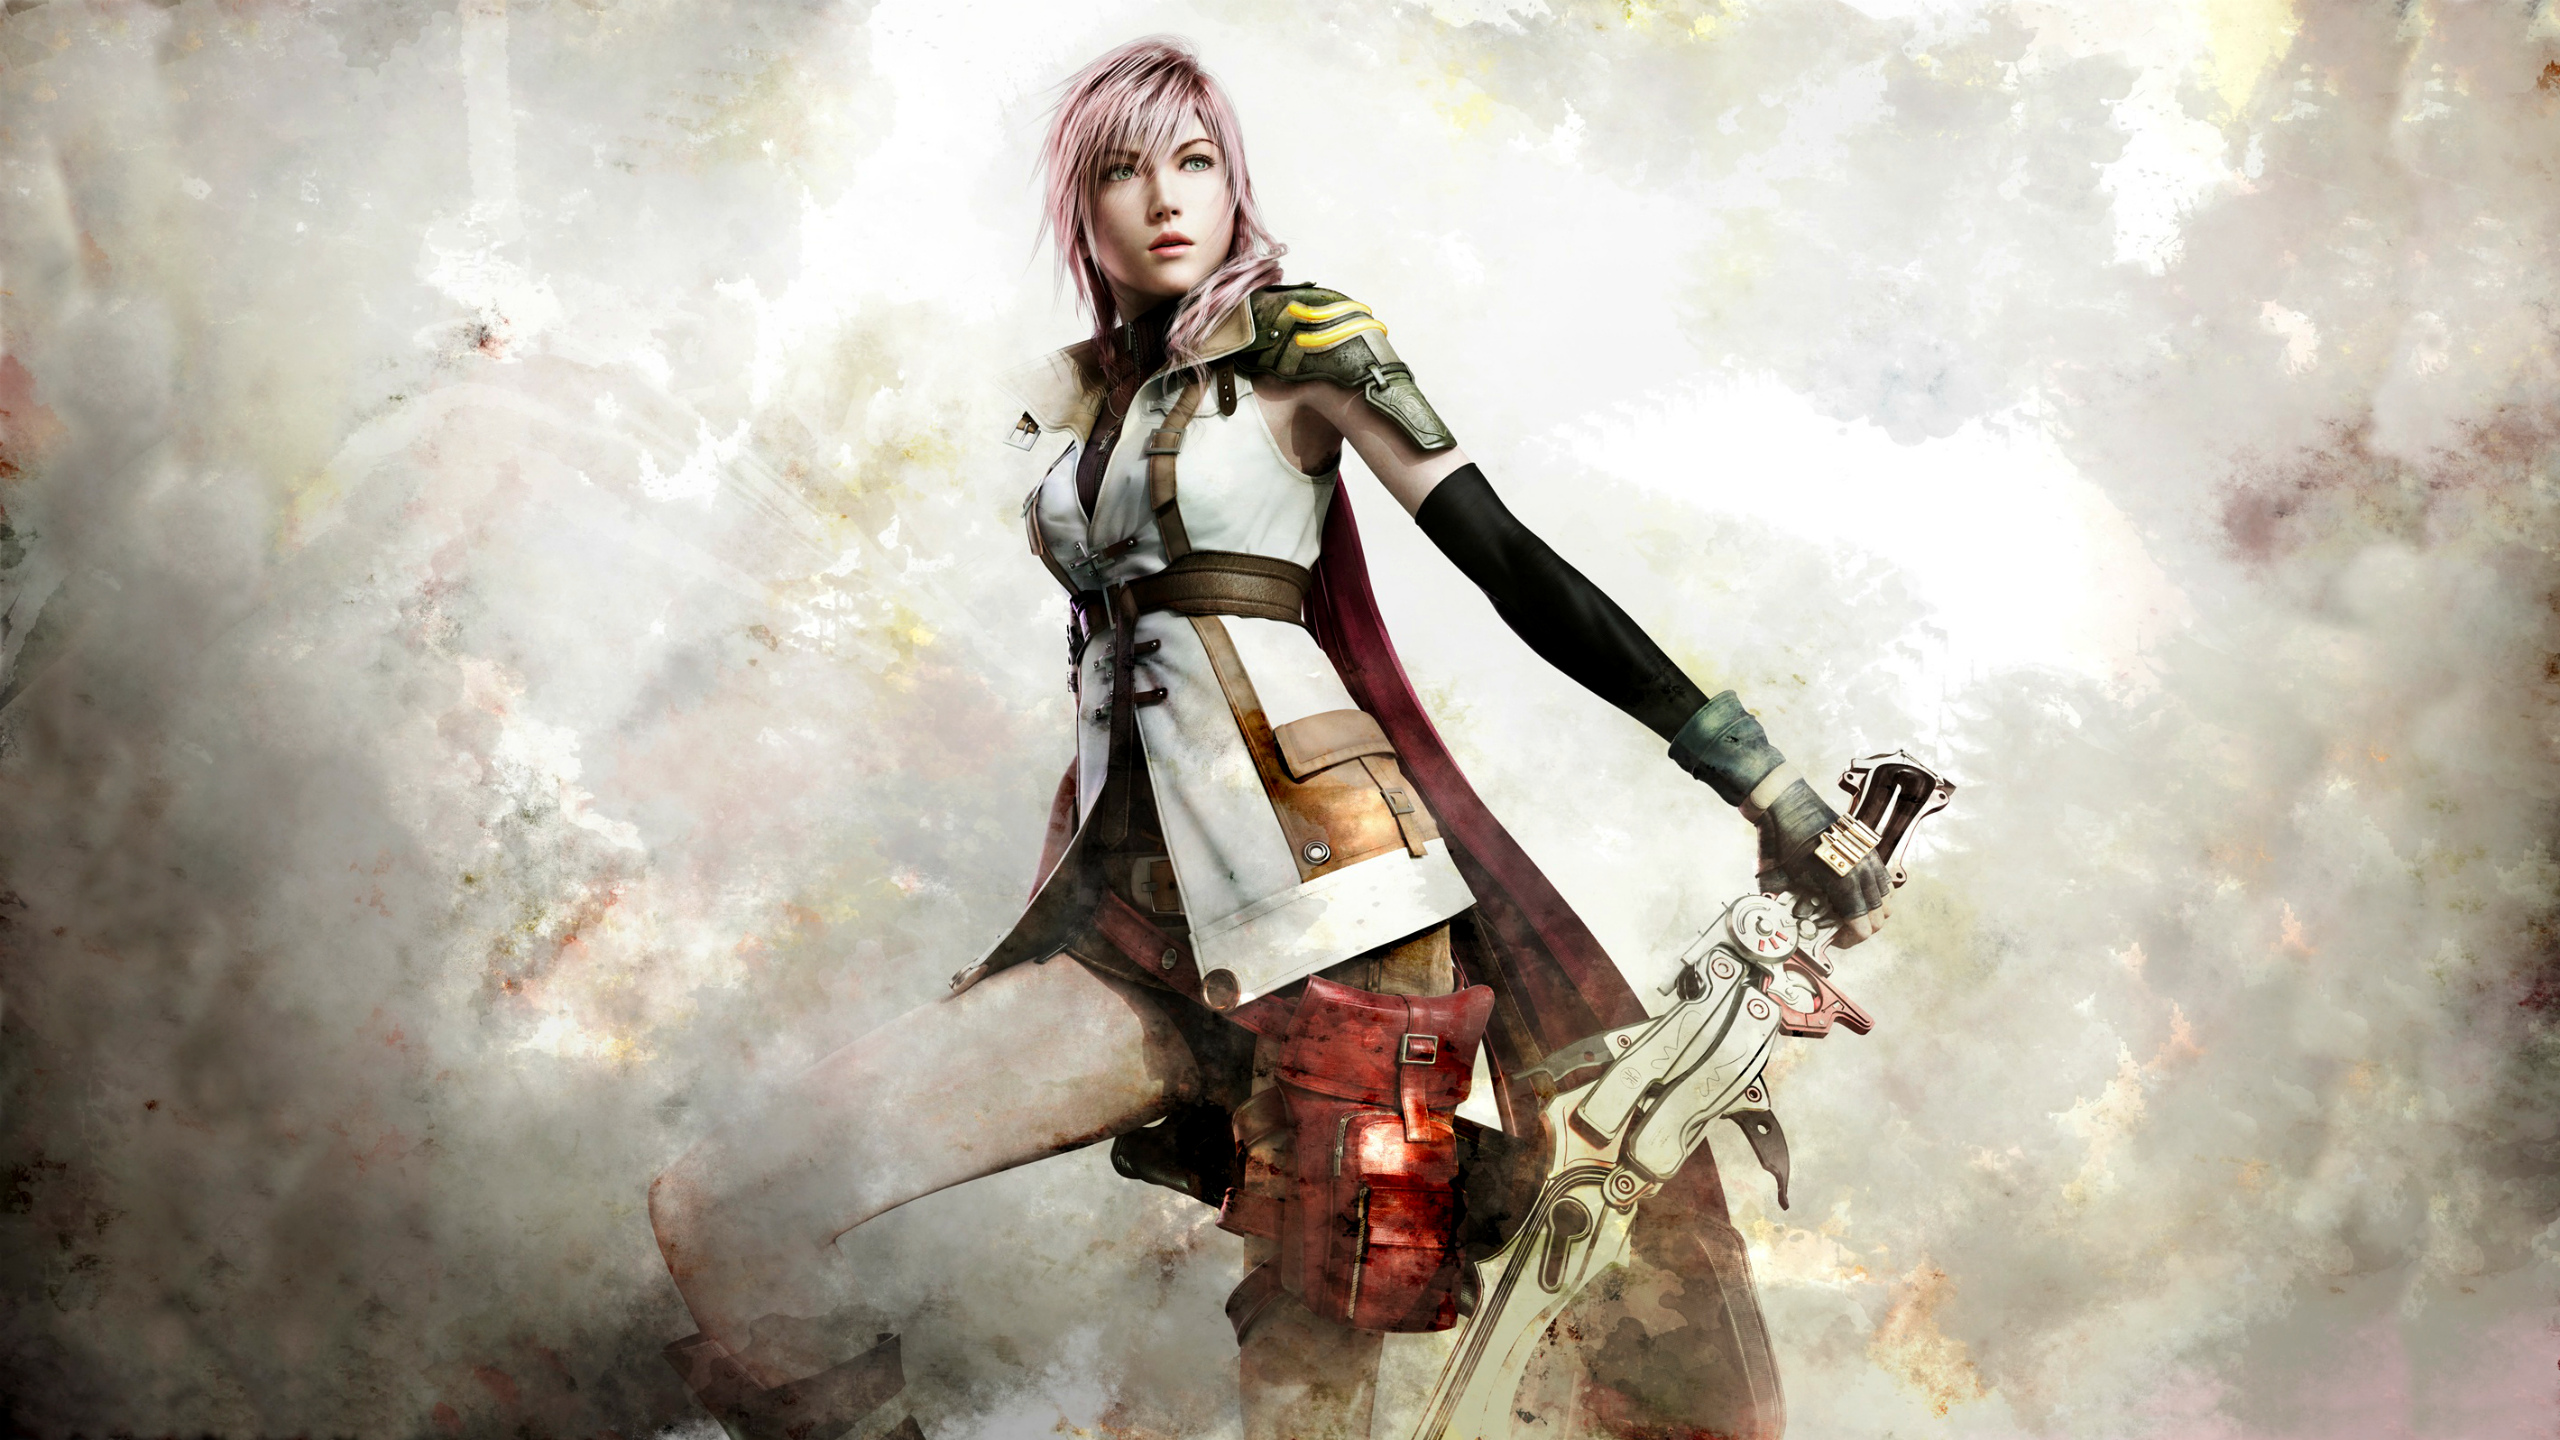 HD Wallpaper Final Fantasy 13   Splendid Wallpaper HD 2560x1440